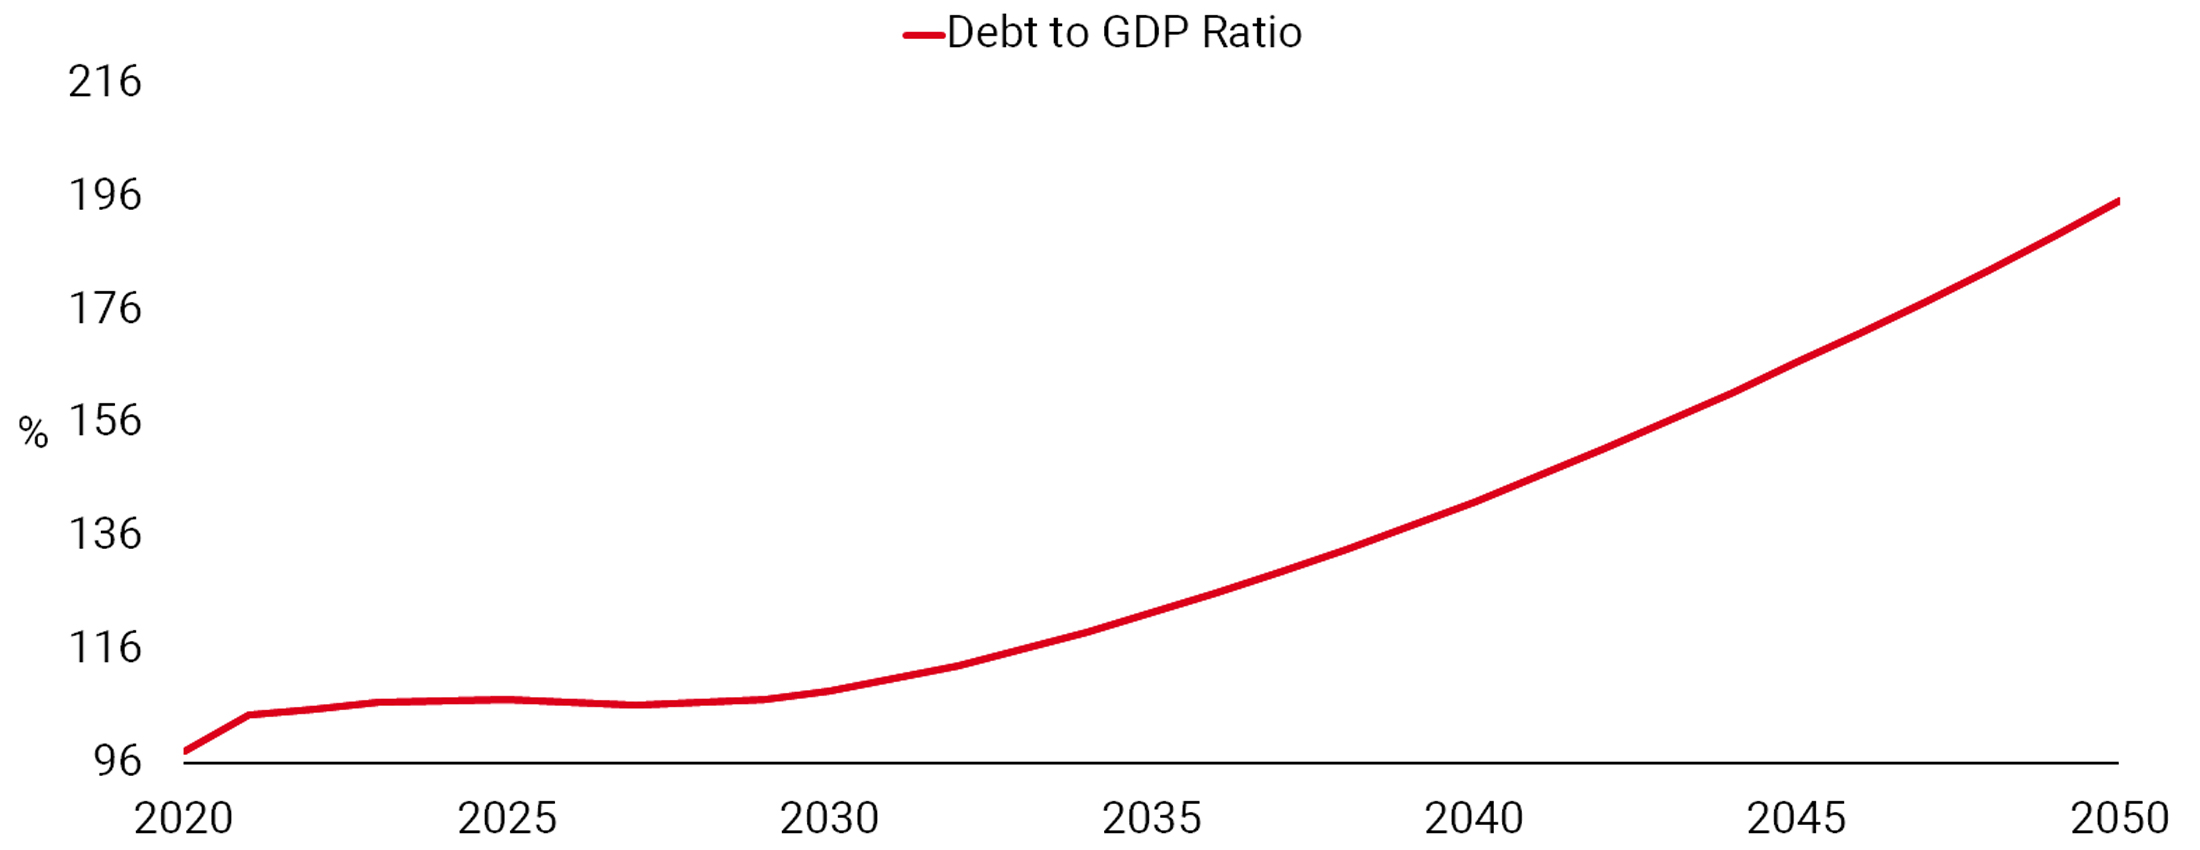 USD Headwinds – Soaring Debt to GDP